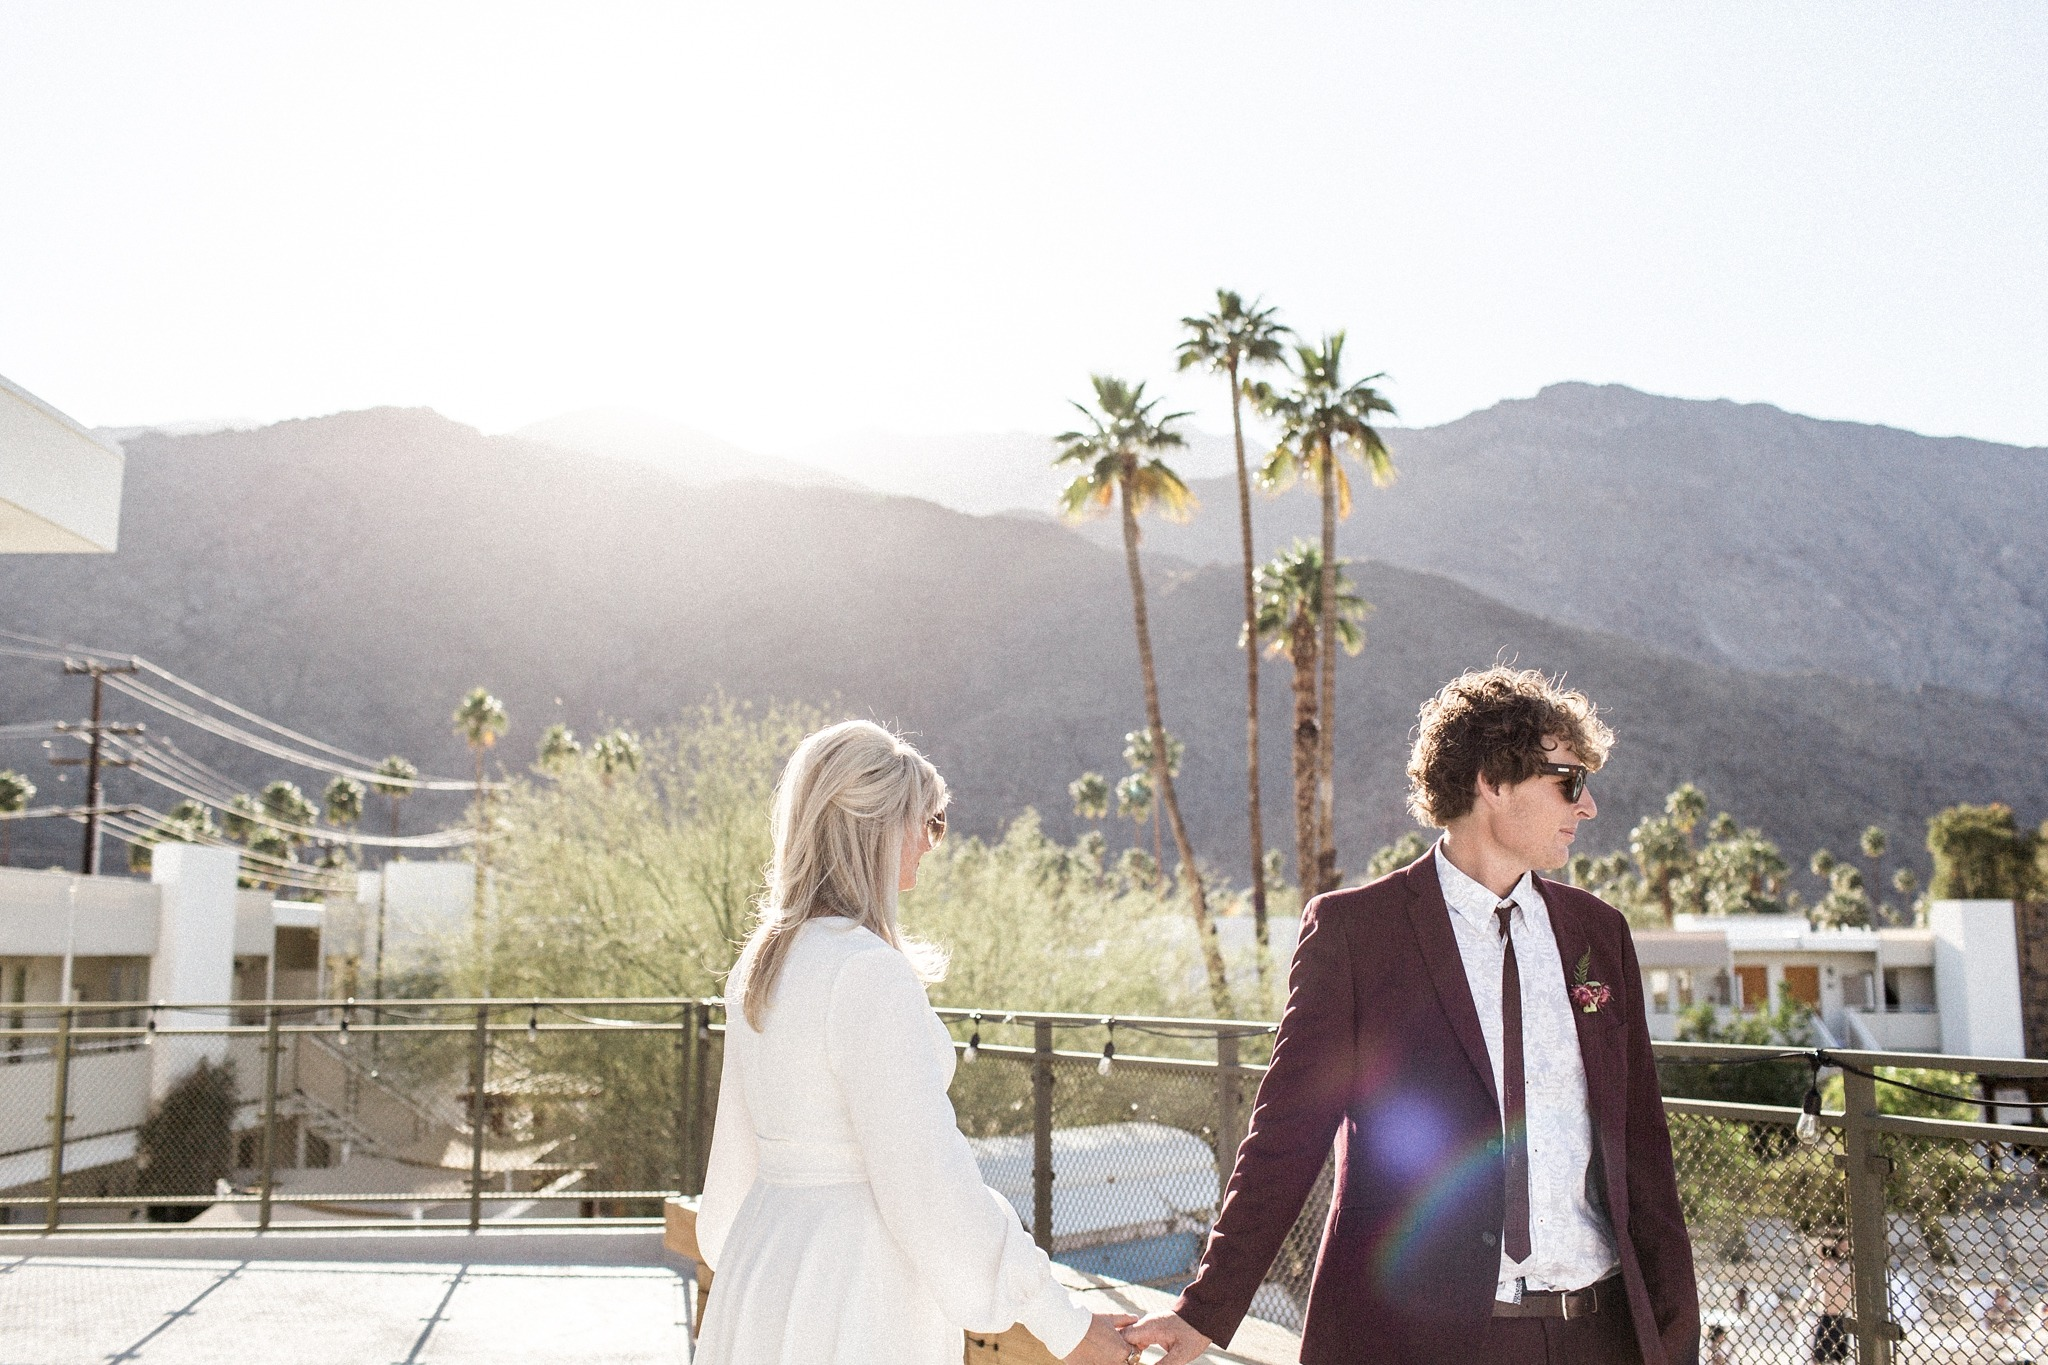 elopement-palm-springs-wedding-photographer-sarah-falugo_0053